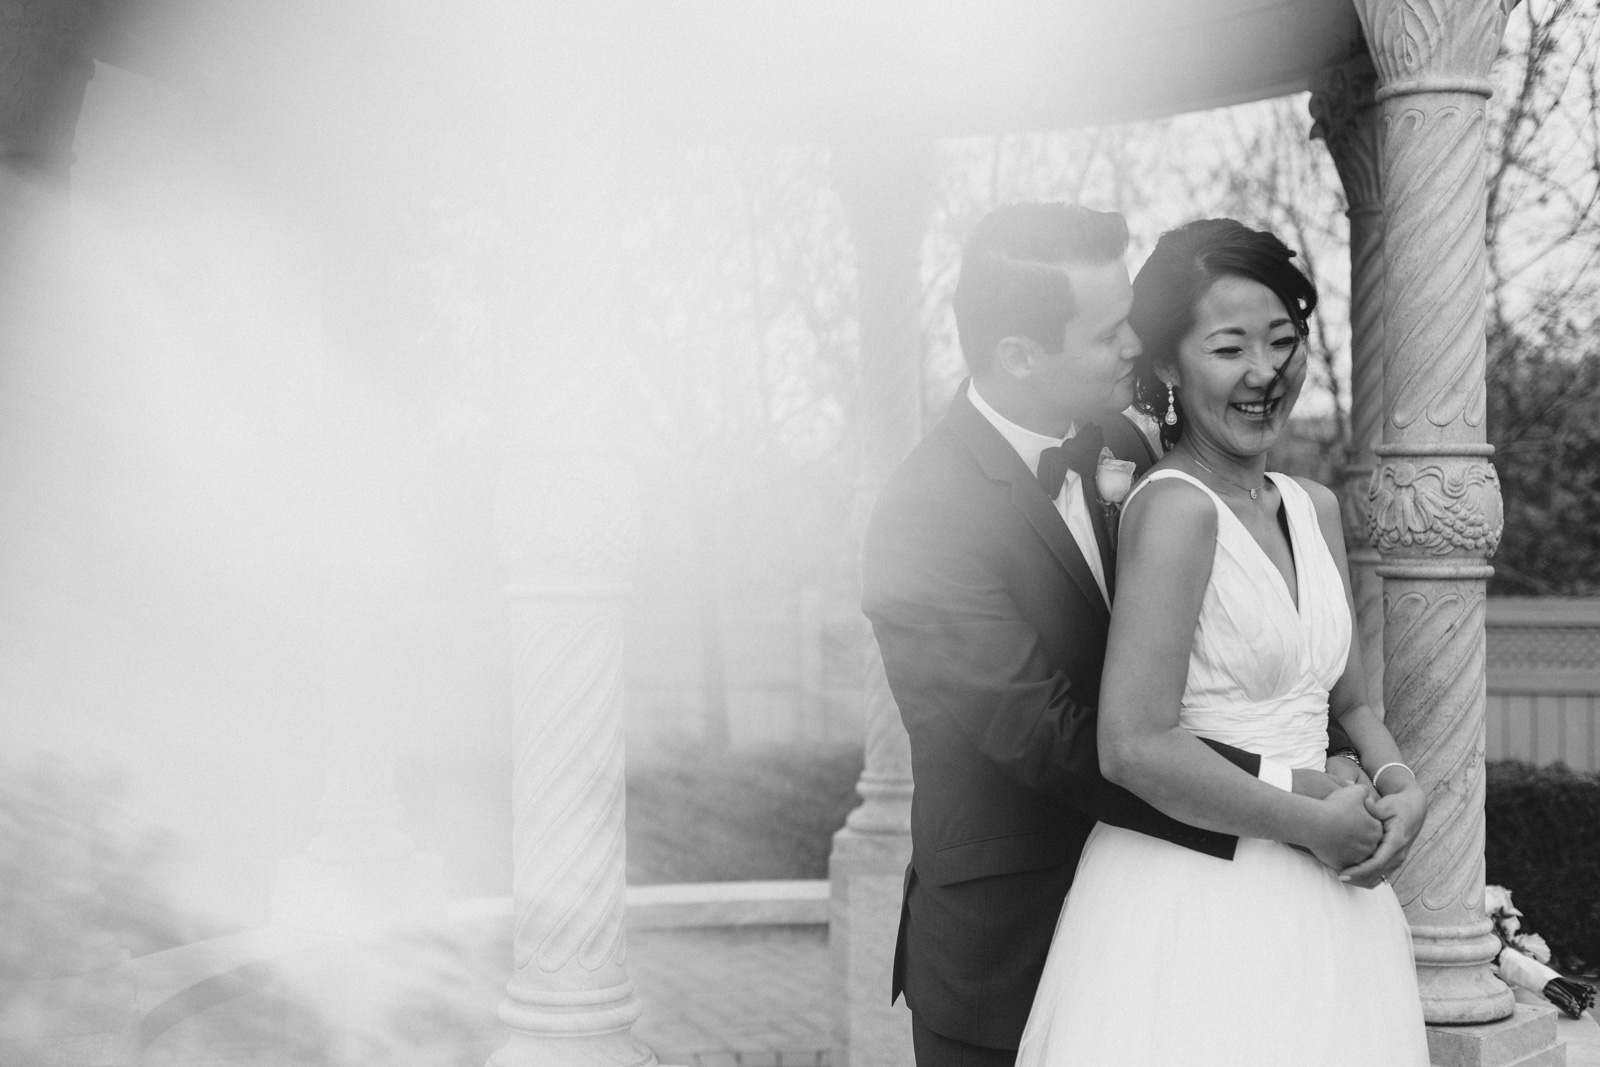 vaughn-wedding-photography-images-by-nick-driver-and-sath-arul-of-artanis-collective_14.jpg